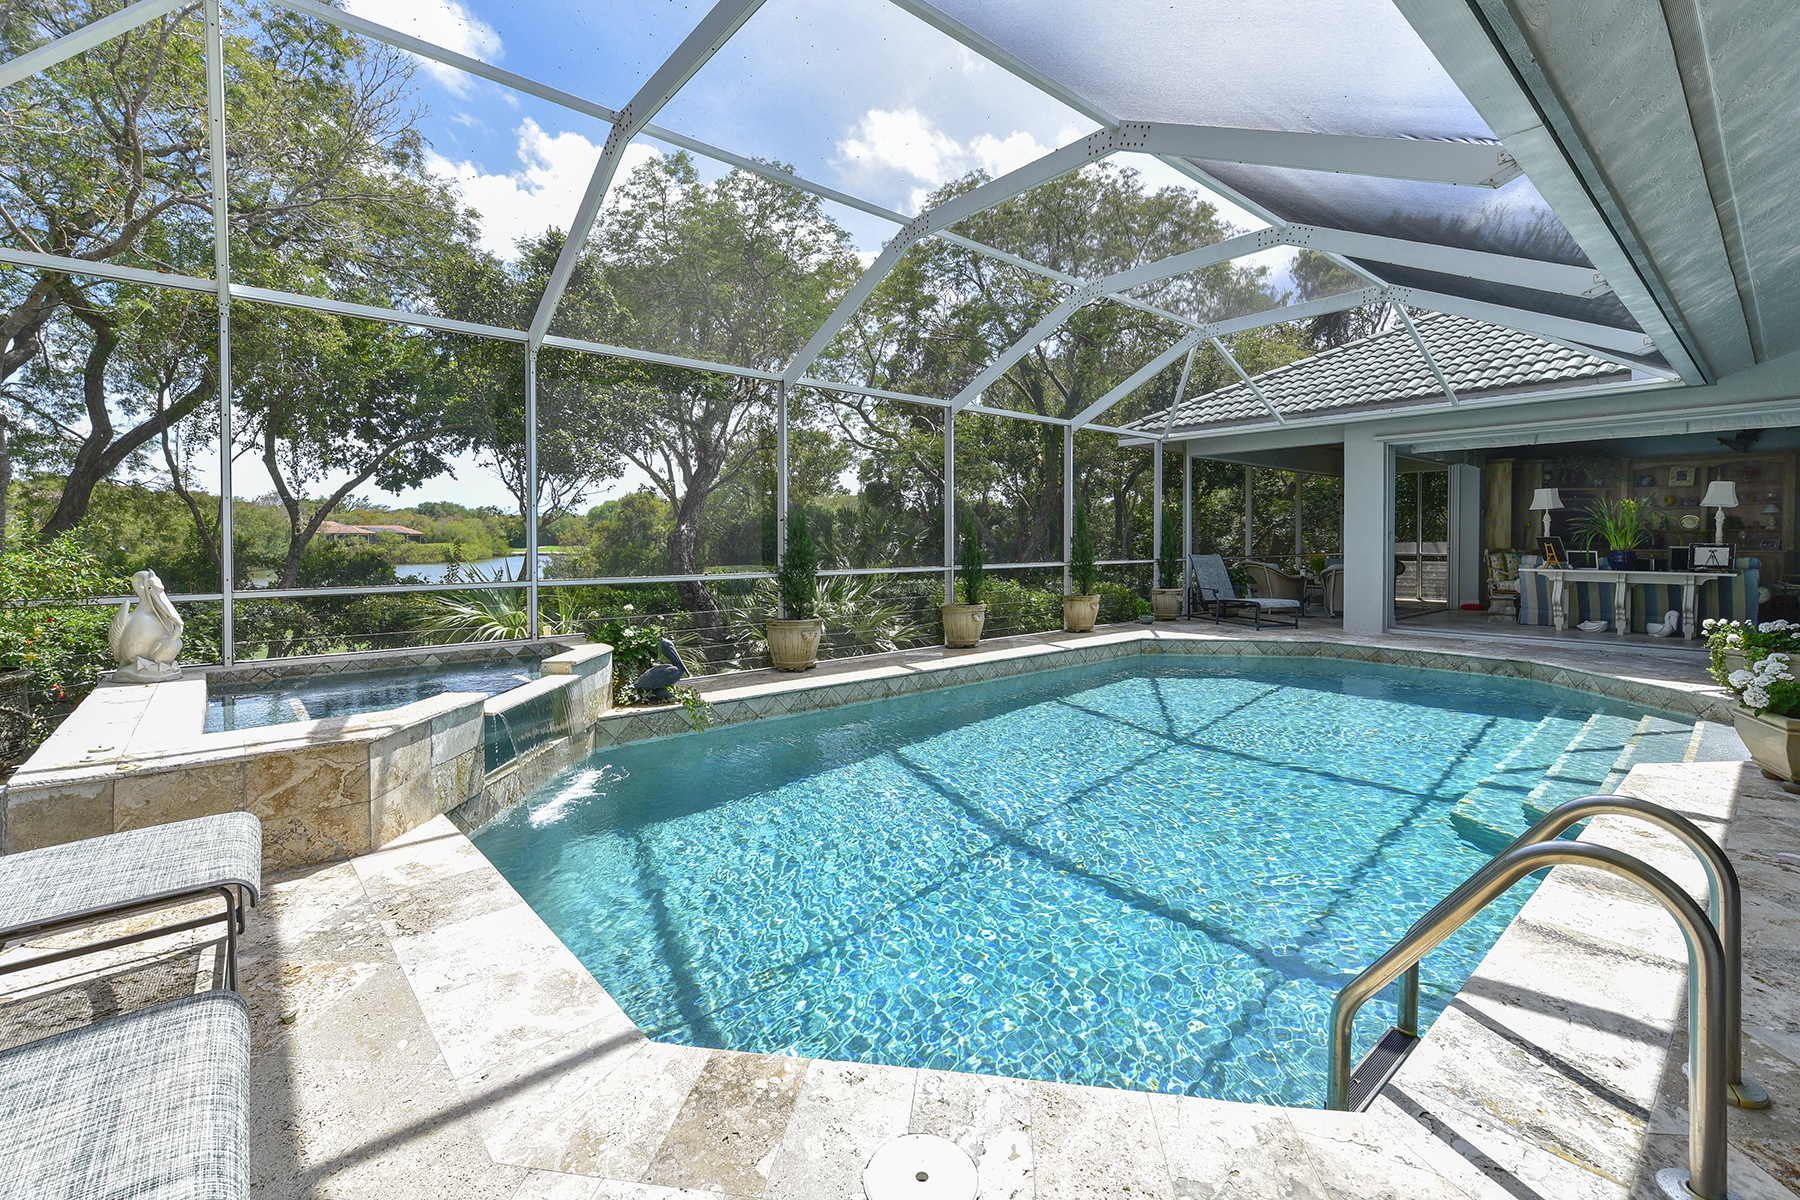 Частный односемейный дом для того Продажа на Golf and Lakefront View Home at Ocean Reef 18 Cinnamon Bark Lane, Ocean Reef Community, Key Largo, Флорида, 33037 Соединенные Штаты